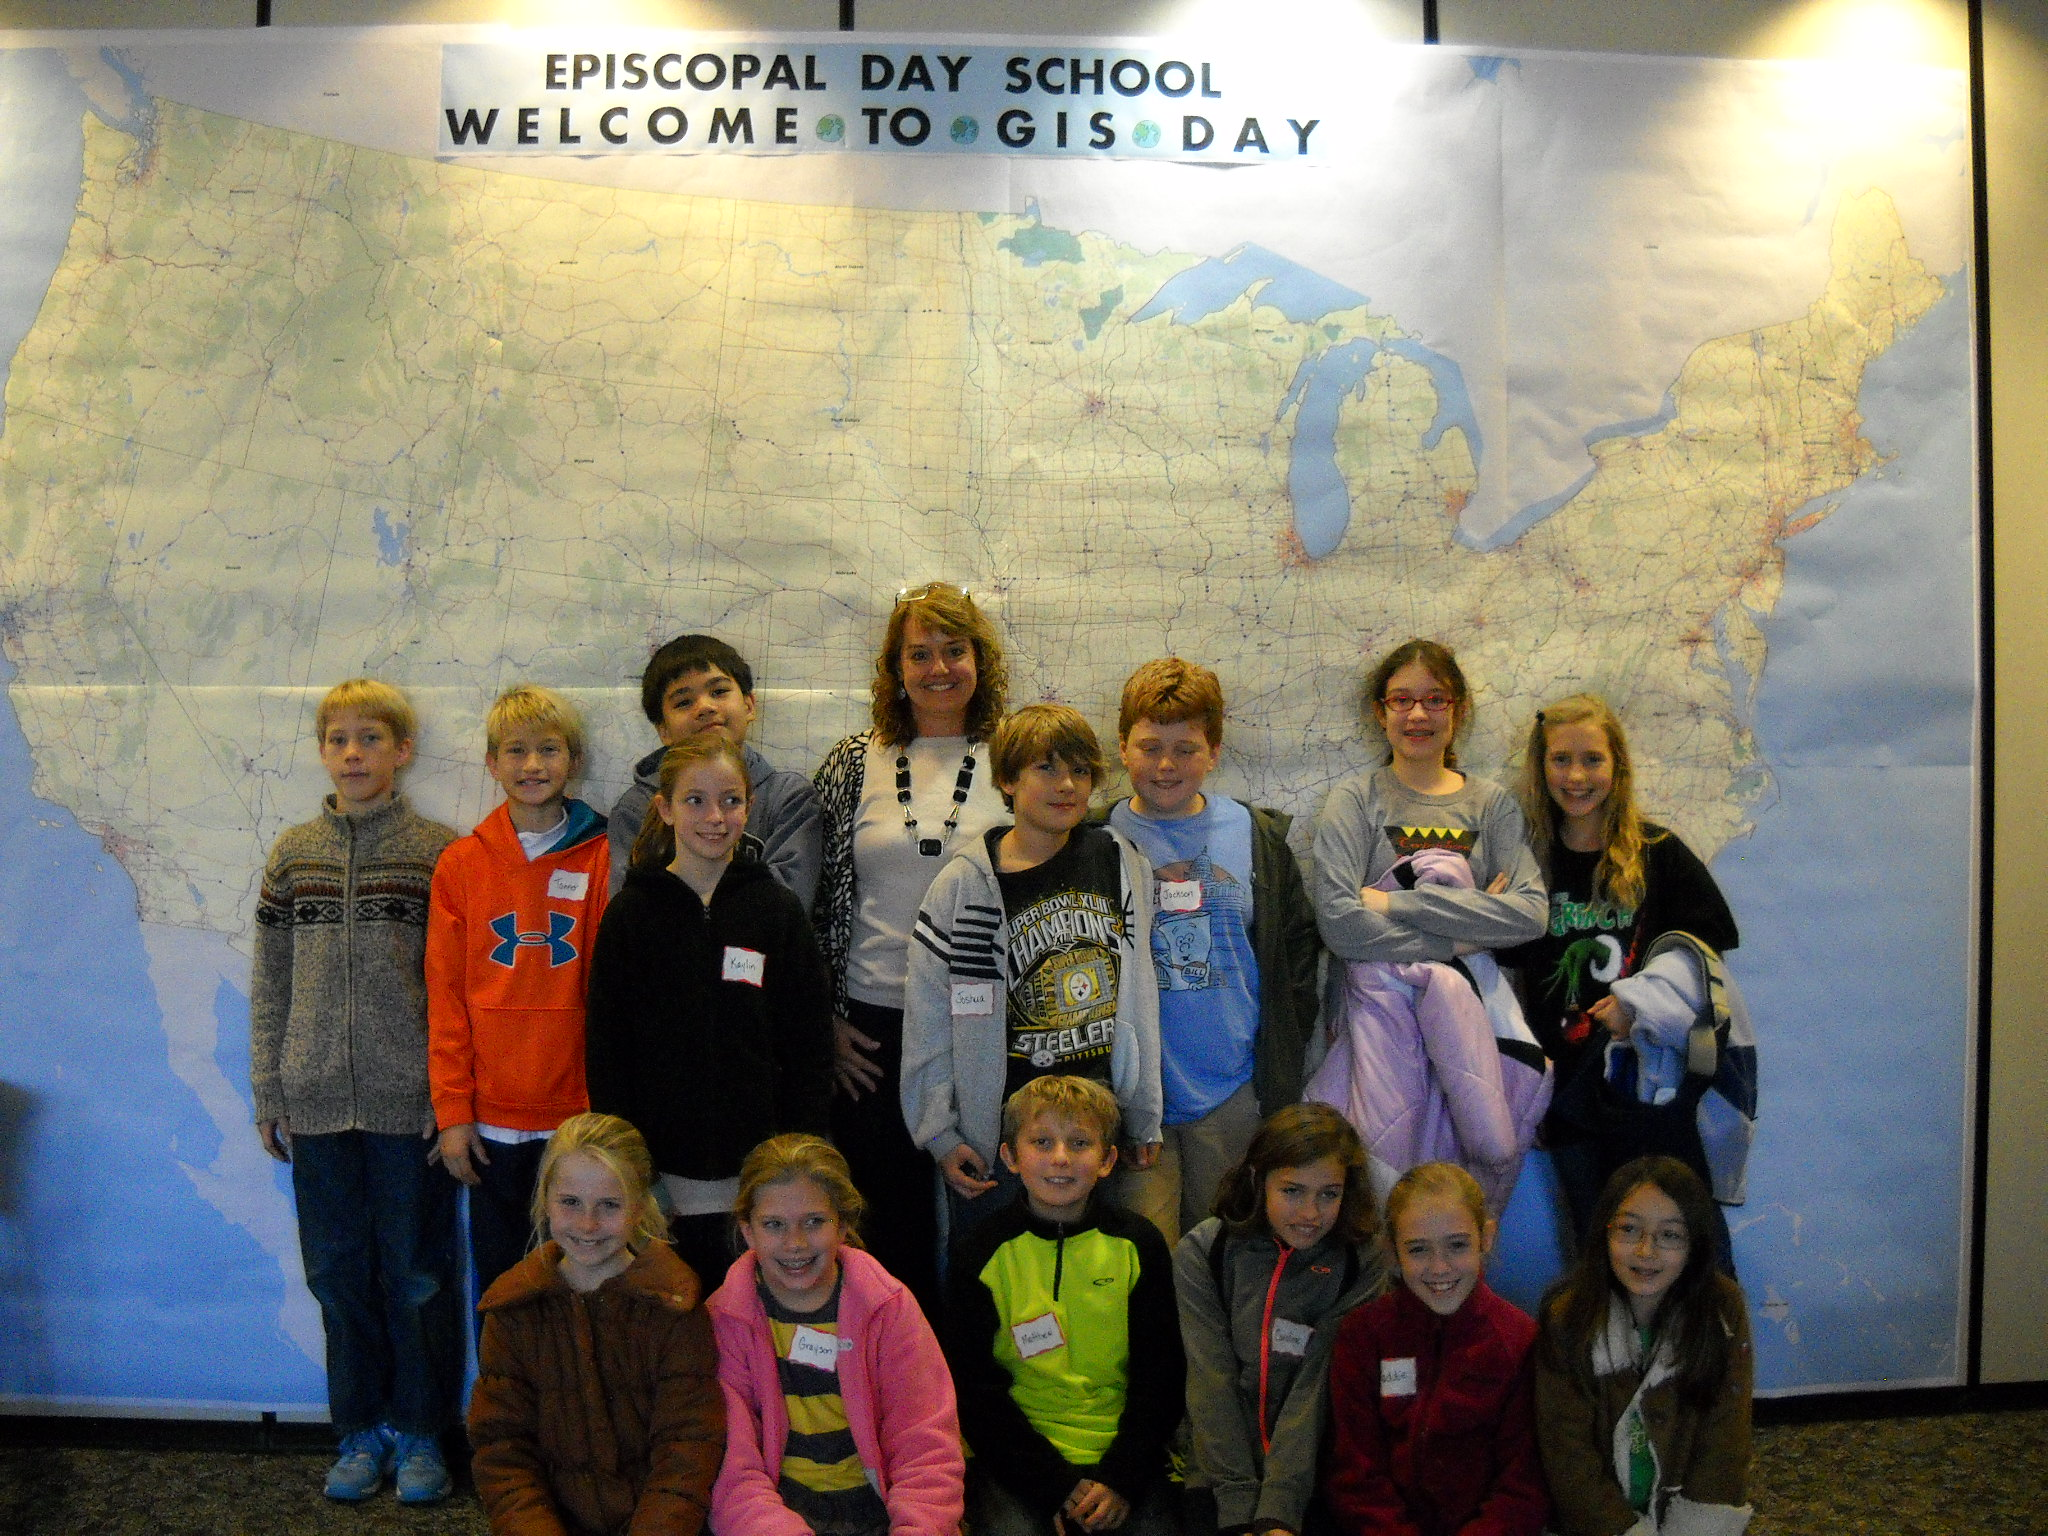 Episcopal Day School students participating in GIS Day at the library